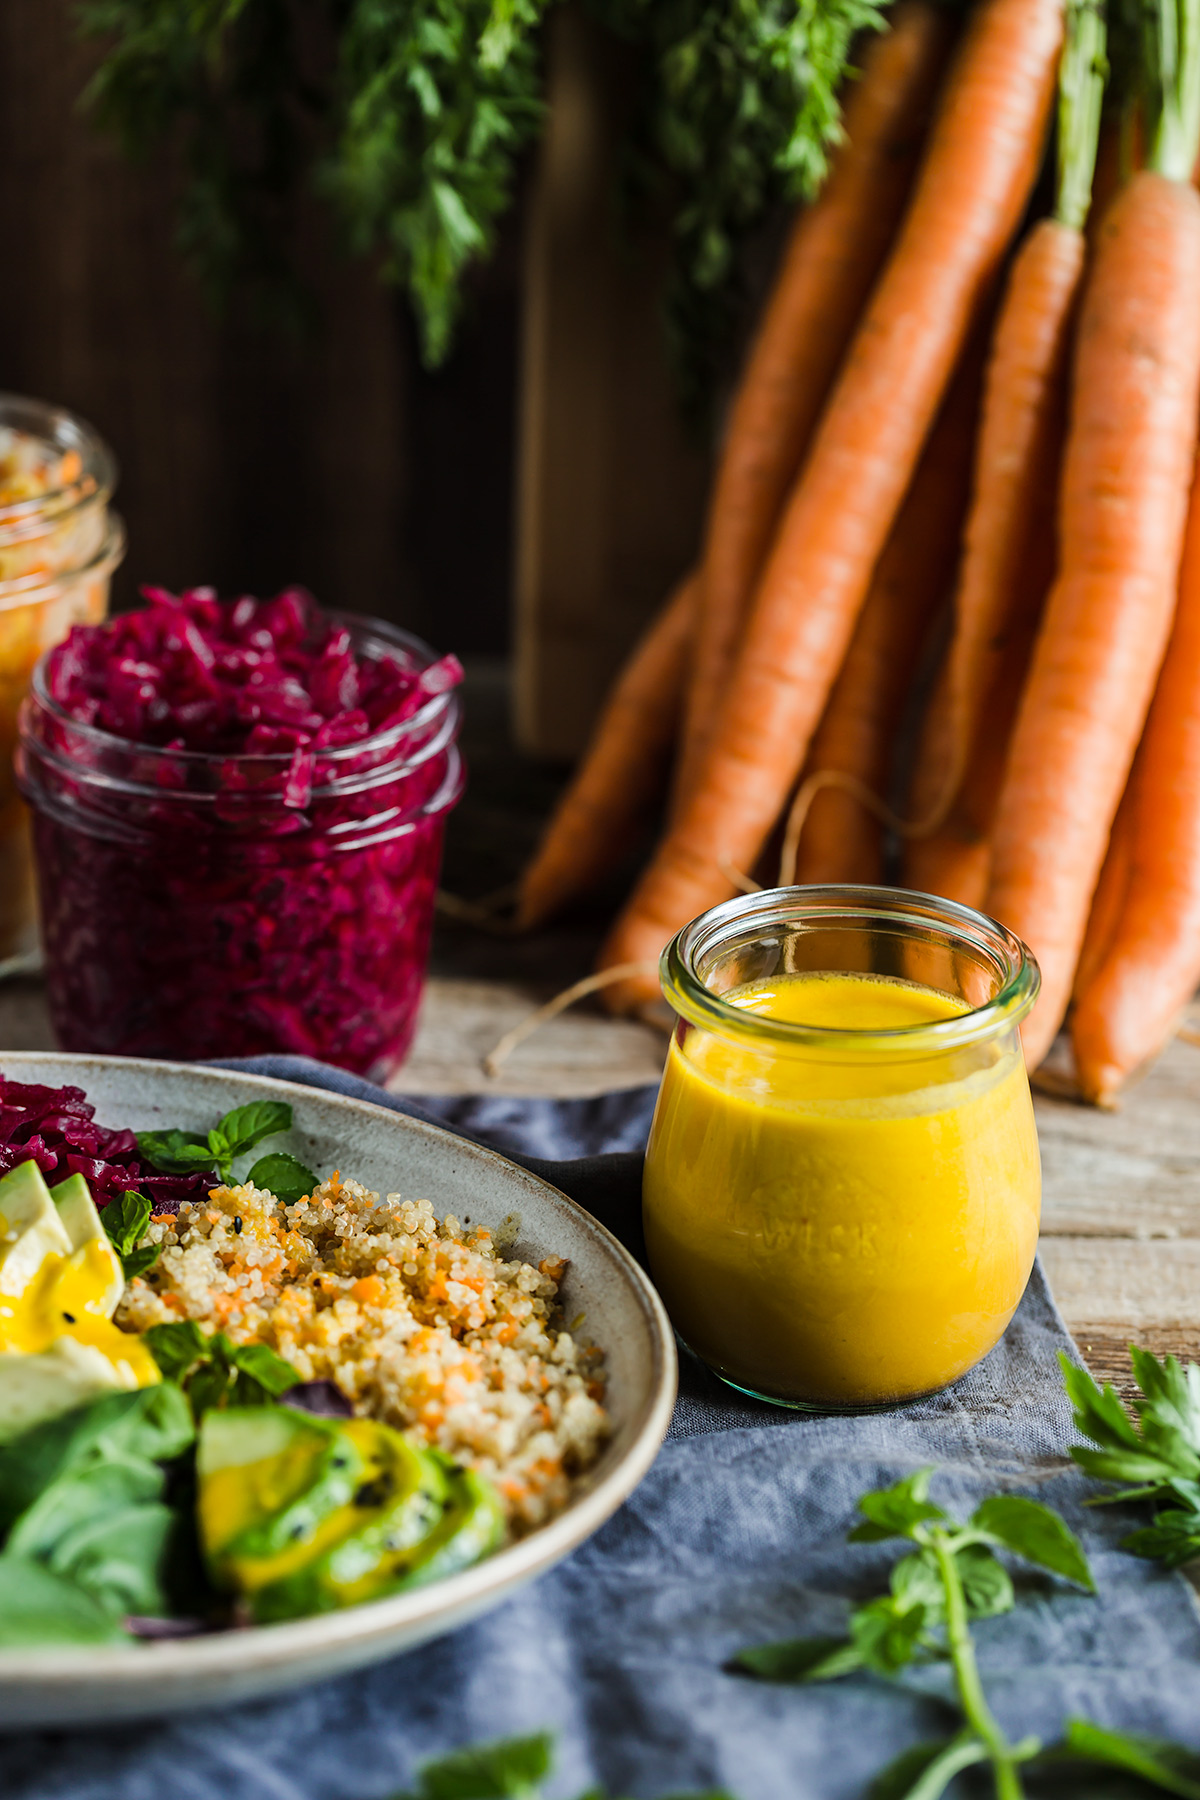 vegan CARROT GINGER DRESSING for salads and buddha bowls #healthy dressing alle carote e zenzero per insalate insaltone ricetta light